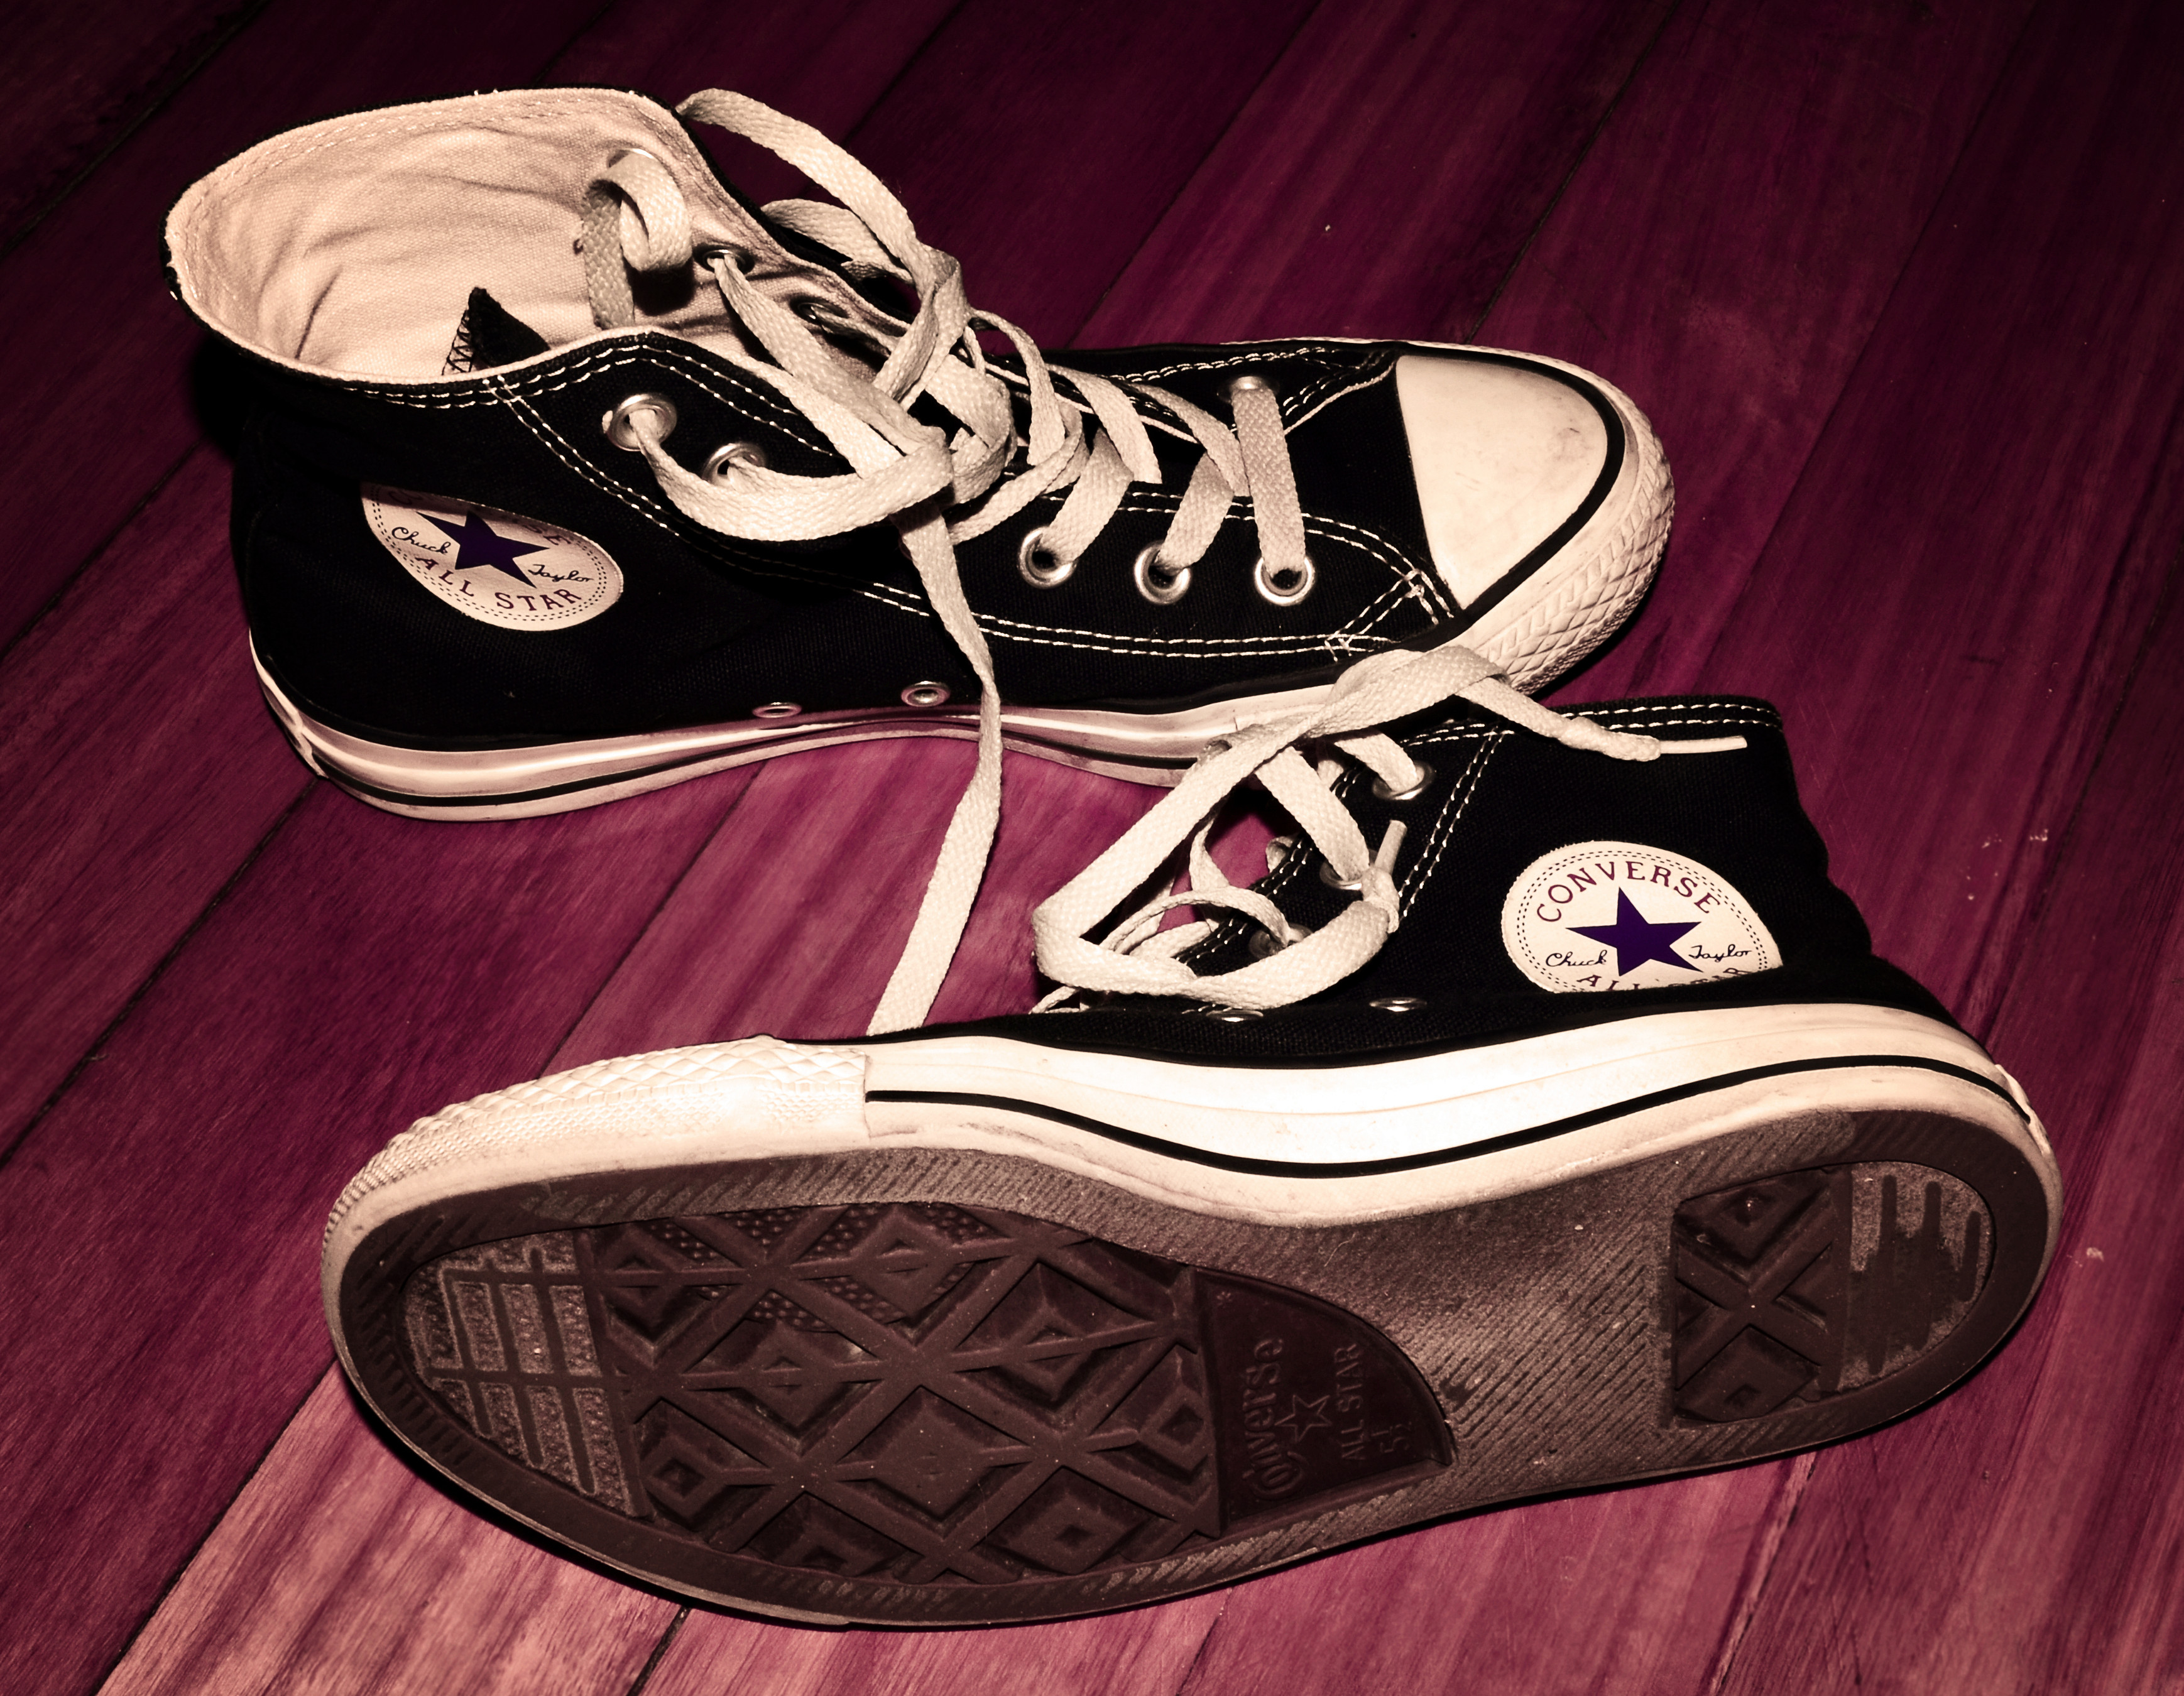 6288a7096 La historia de las zapatillas Converse All Star